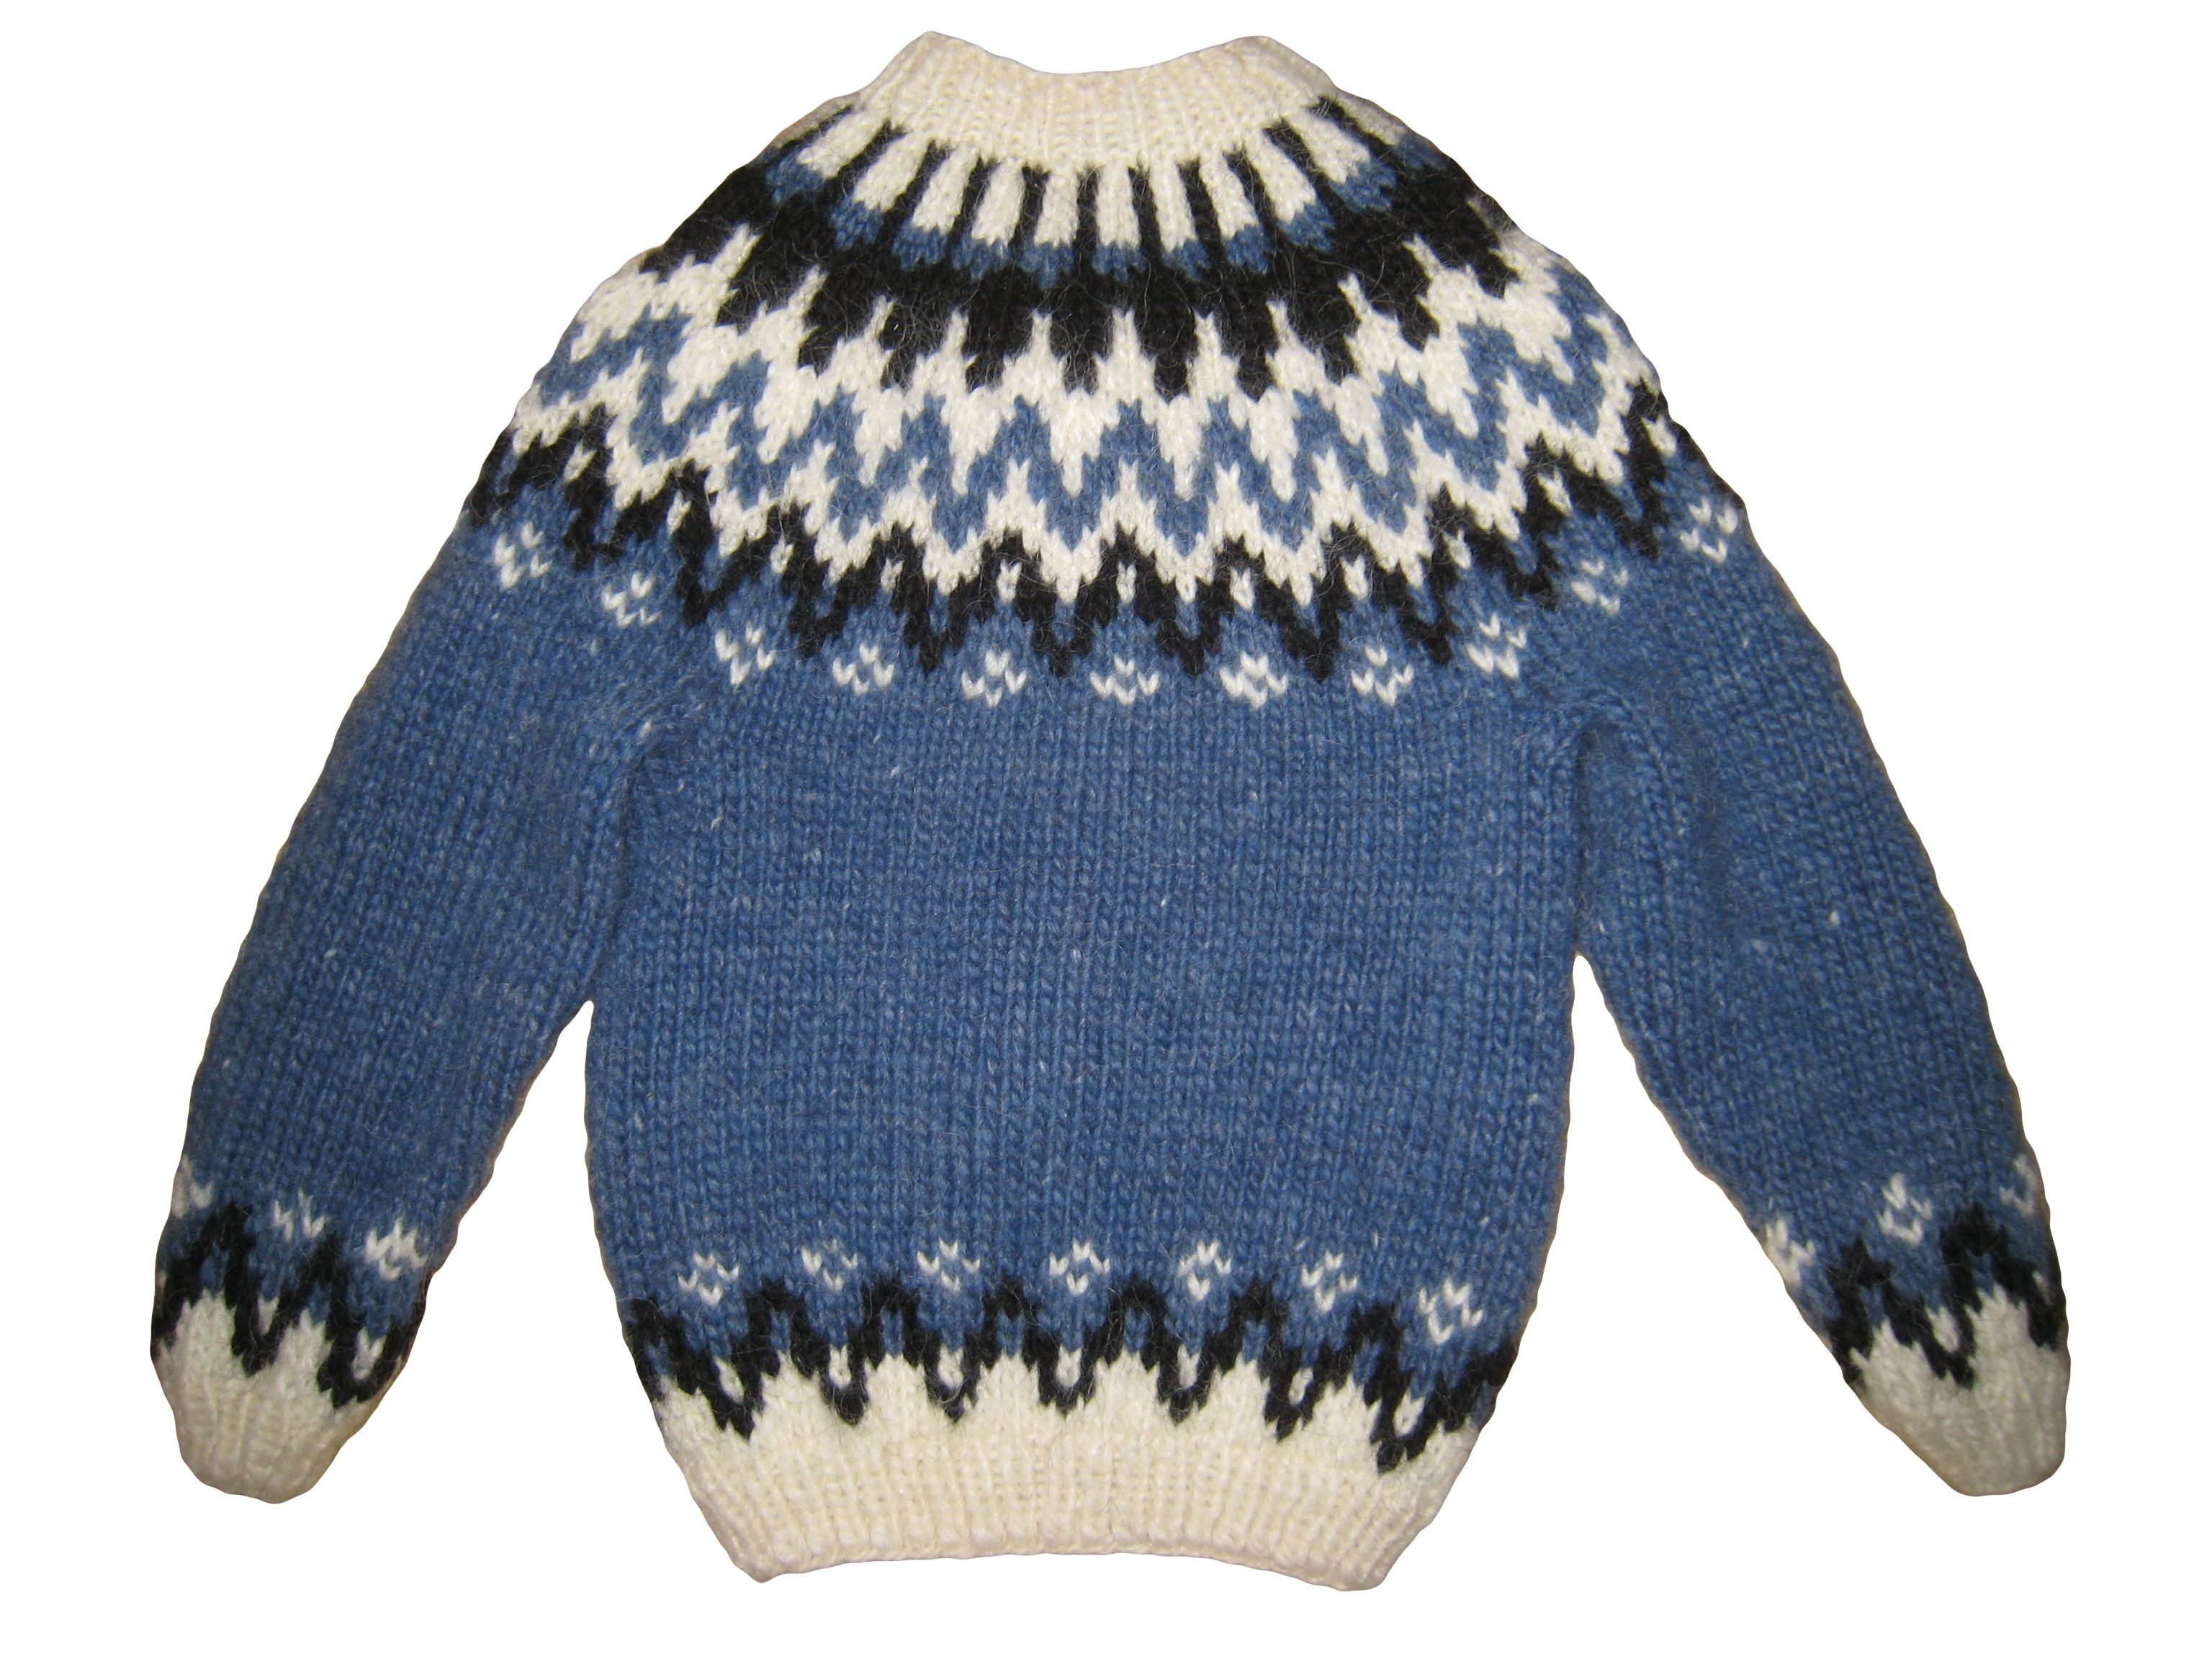 10090184 origpic ee0173g 30722304 knit pinterest easy islina garn och design islina yarn and design pattern waves free icelandic knitted sweater for children no 7 bankloansurffo Image collections